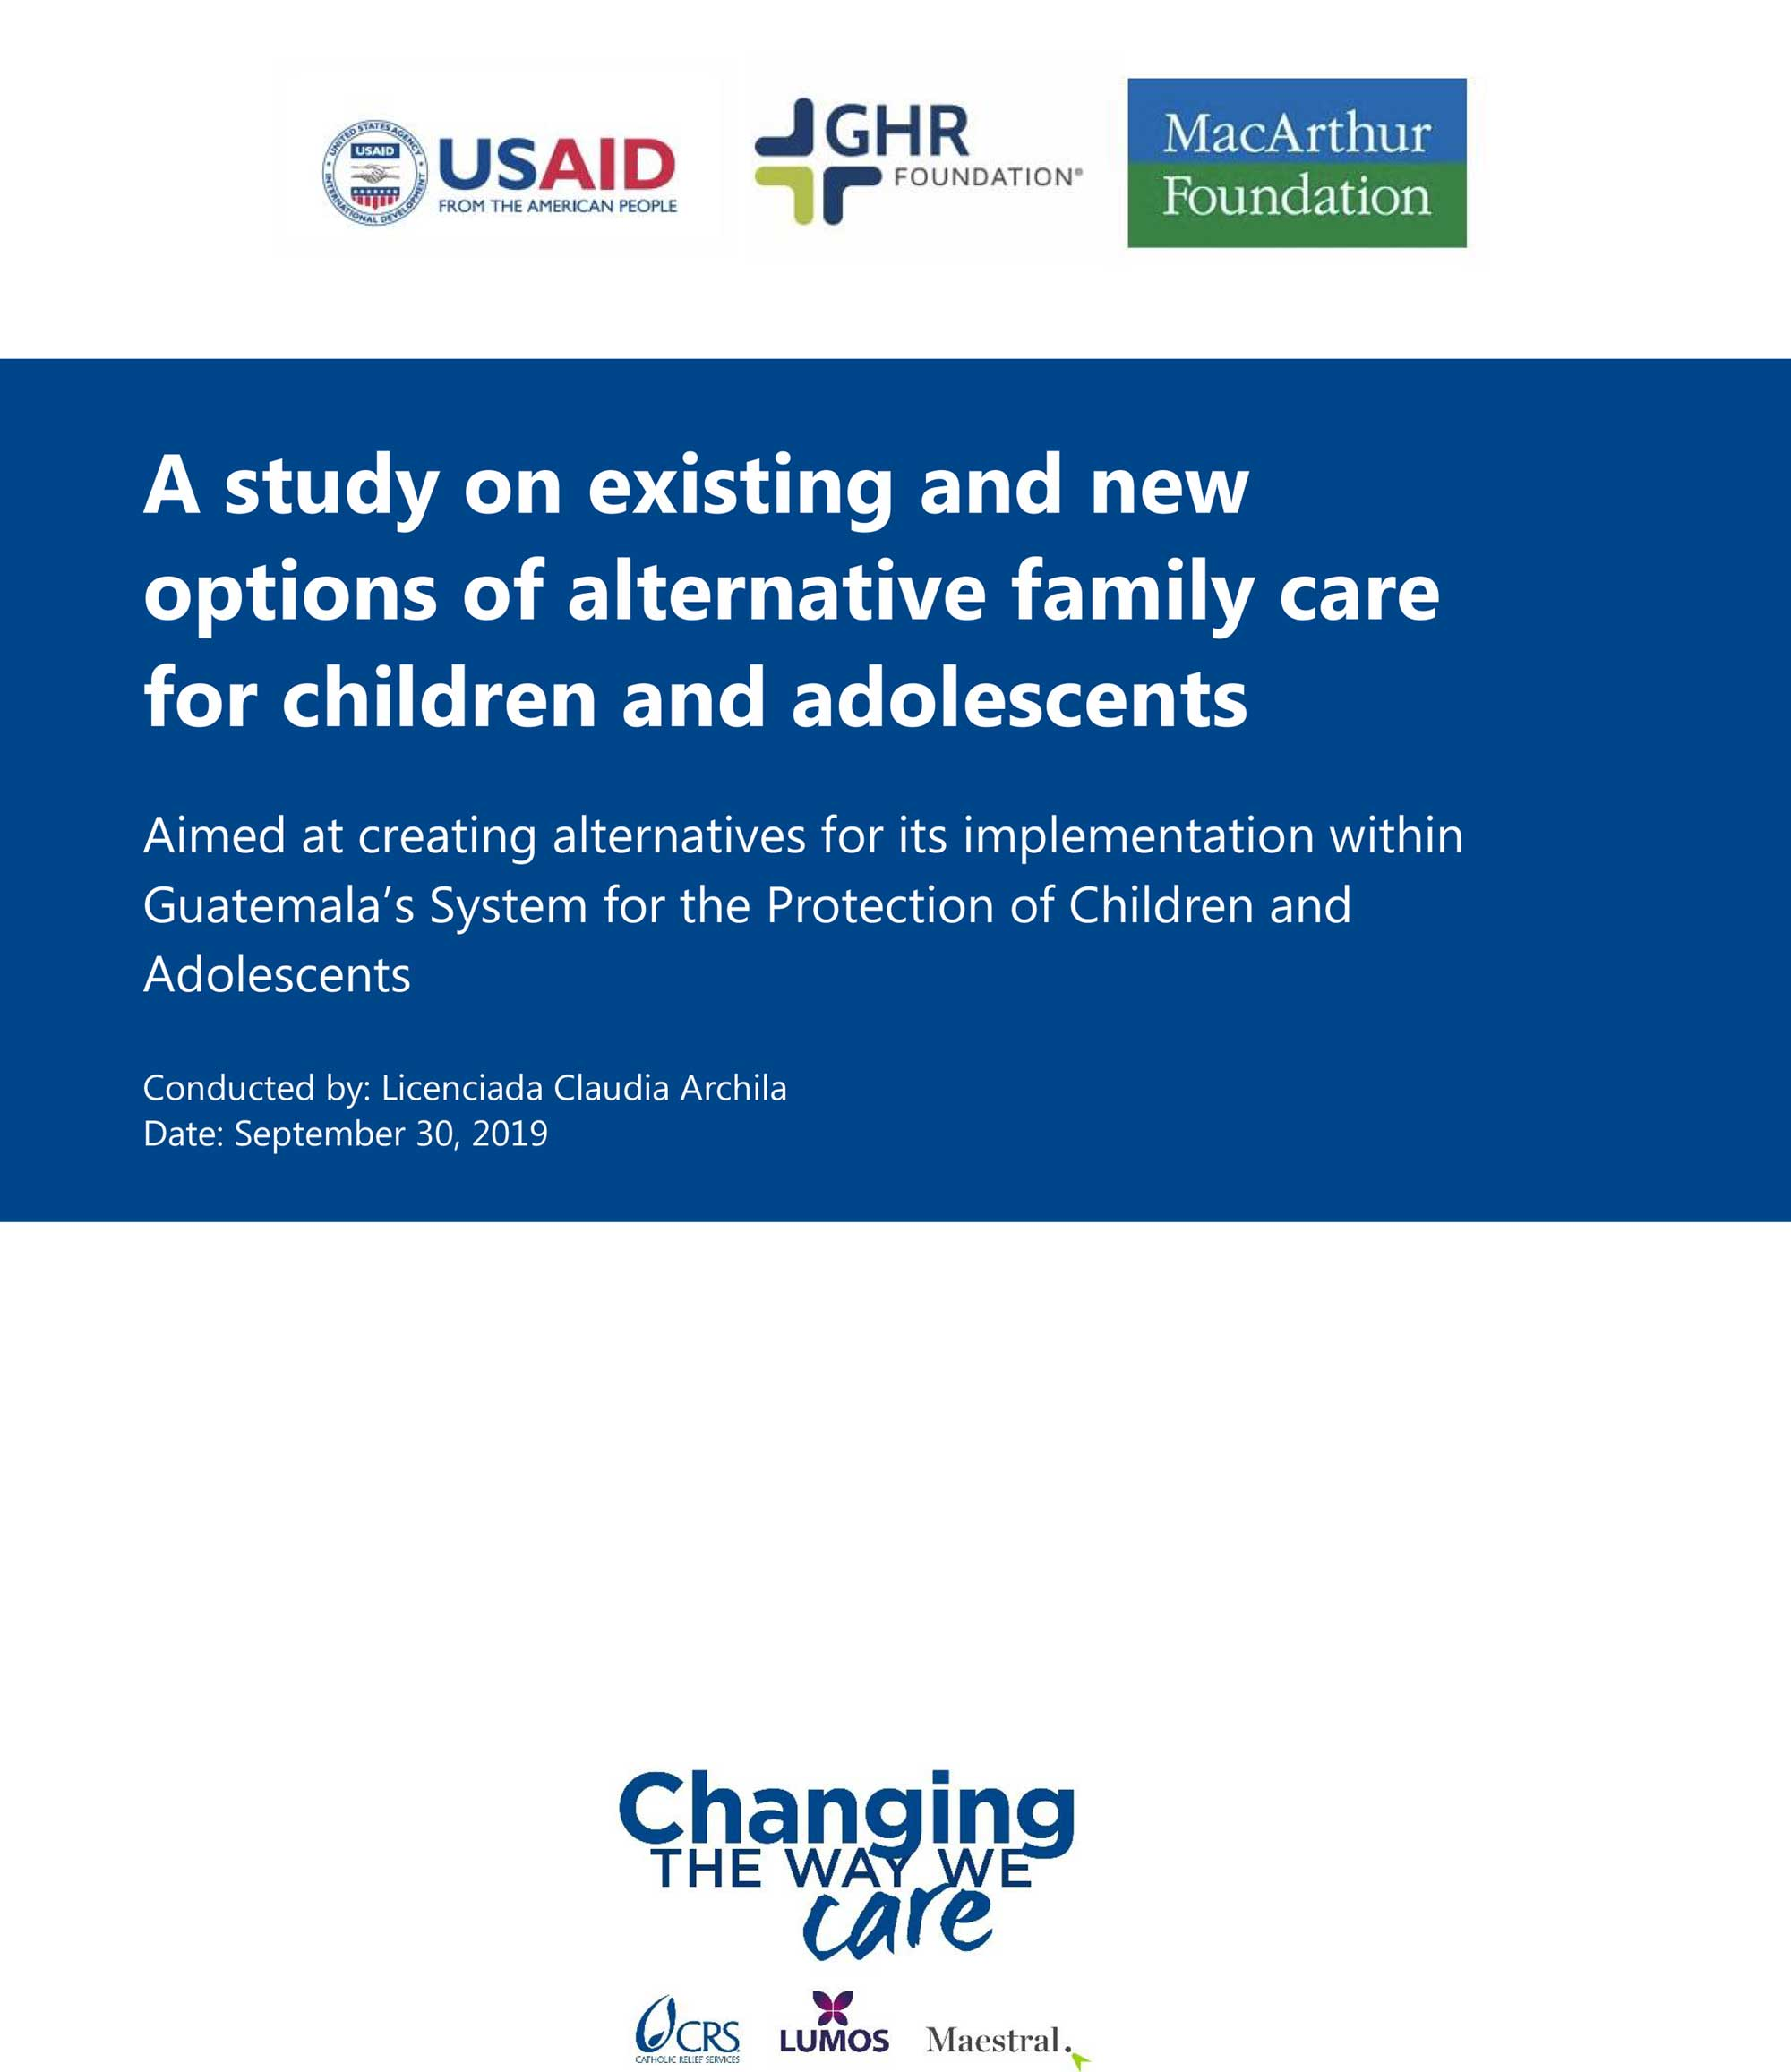 A study on existing and new options of alternative family care for children and adolescents